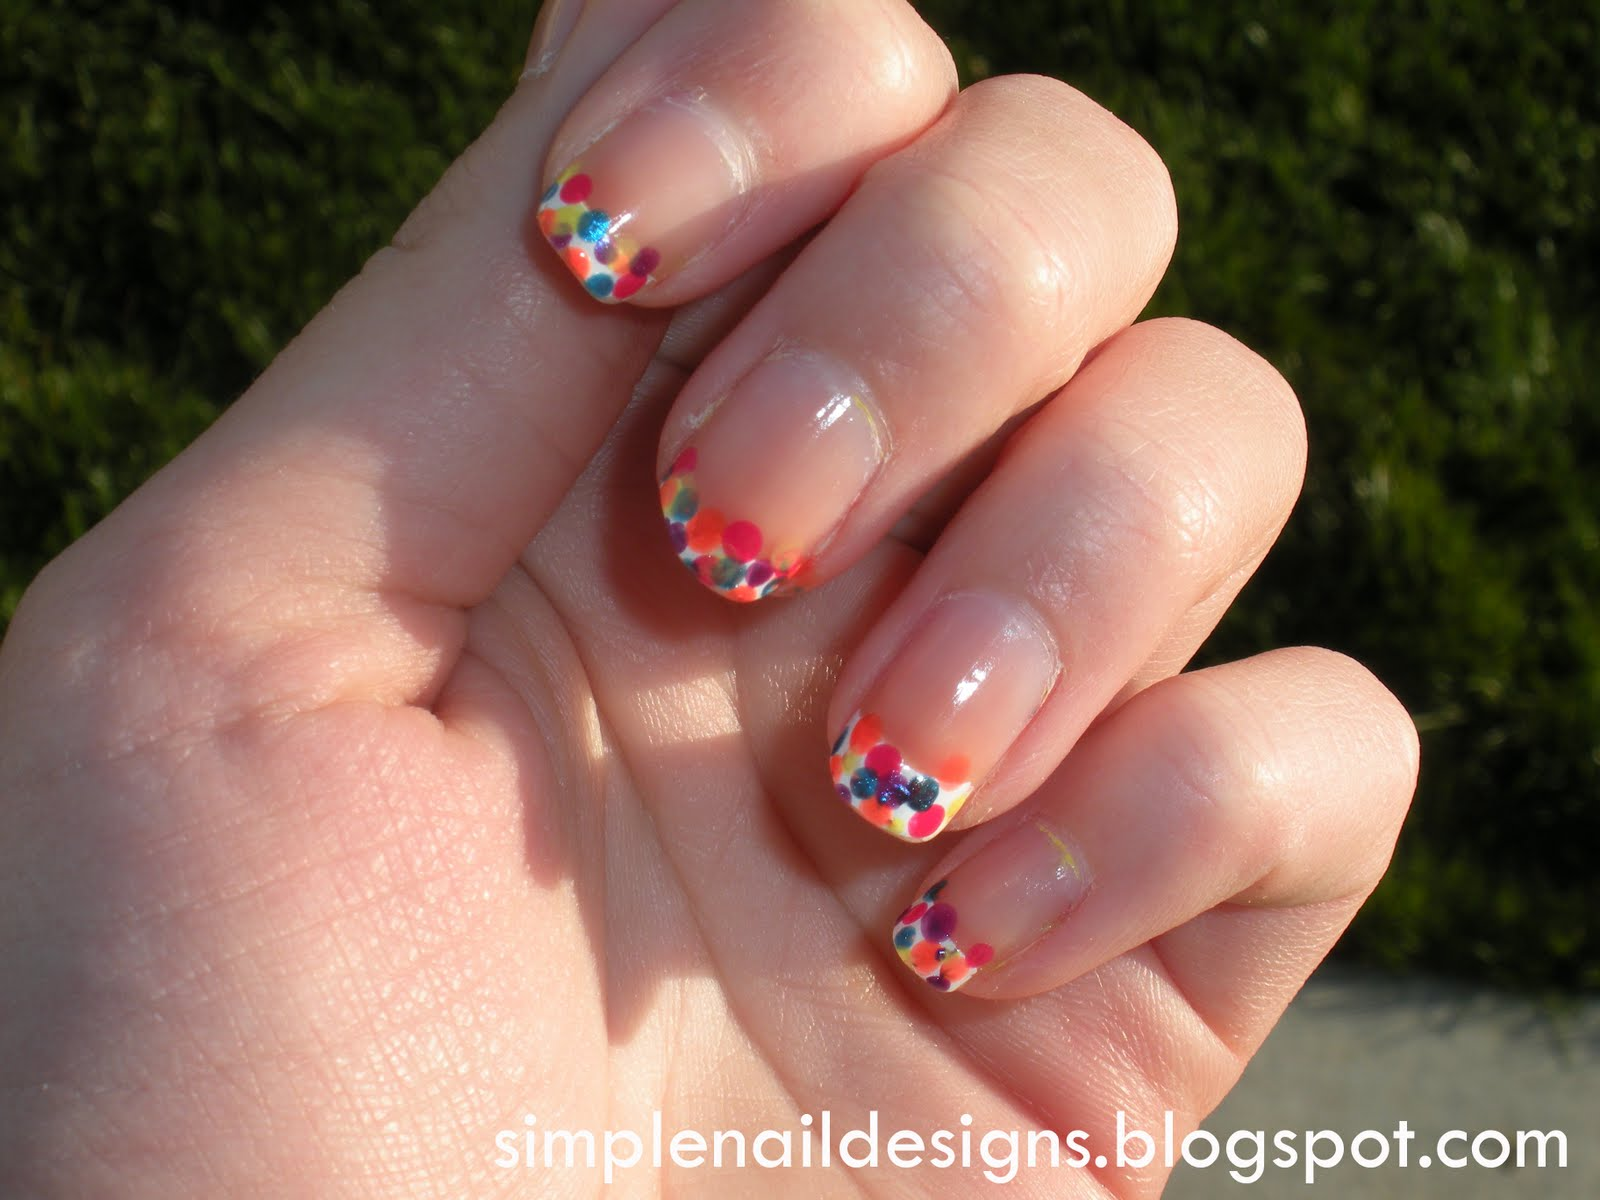 Best of Nail Art: Spring/Easter Inpsired Polka Dot French Nail Design